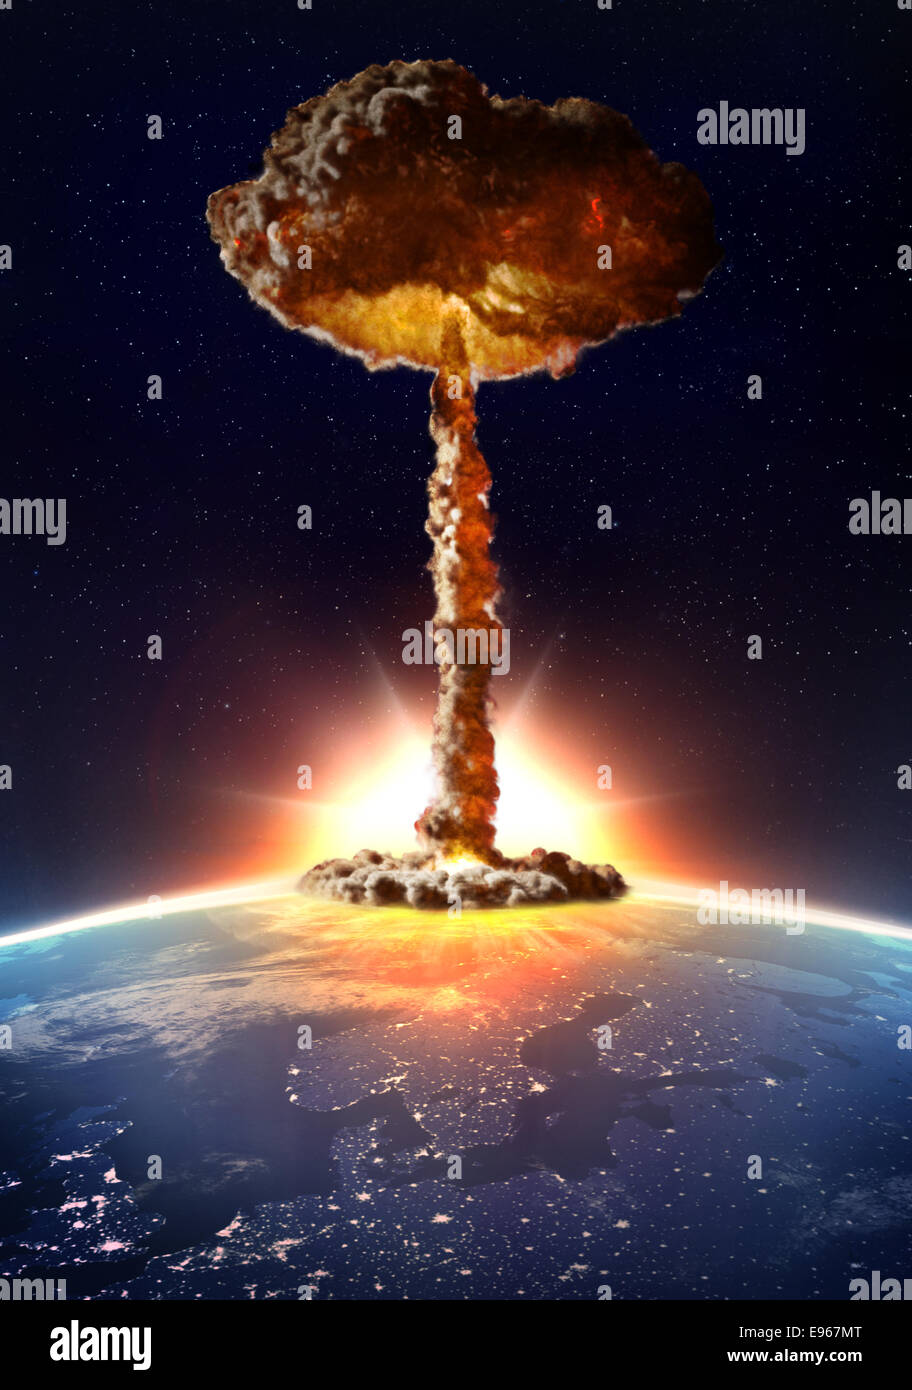 Detonation of a nuclear bomb with a mushroom cloud - Stock Image